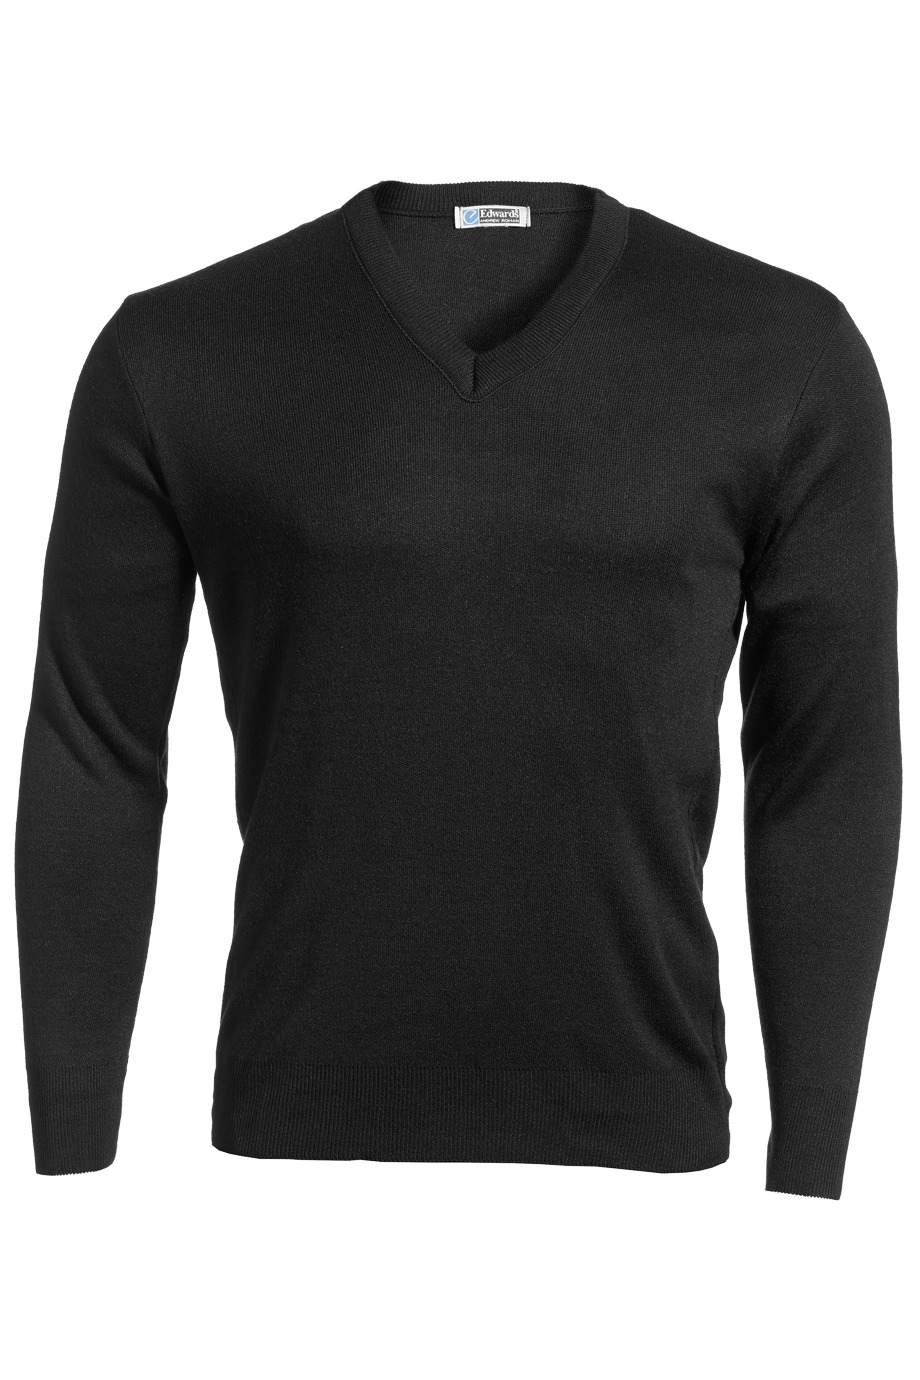 Edwards Garment 265 - Value V-Neck Acrylic Sweater